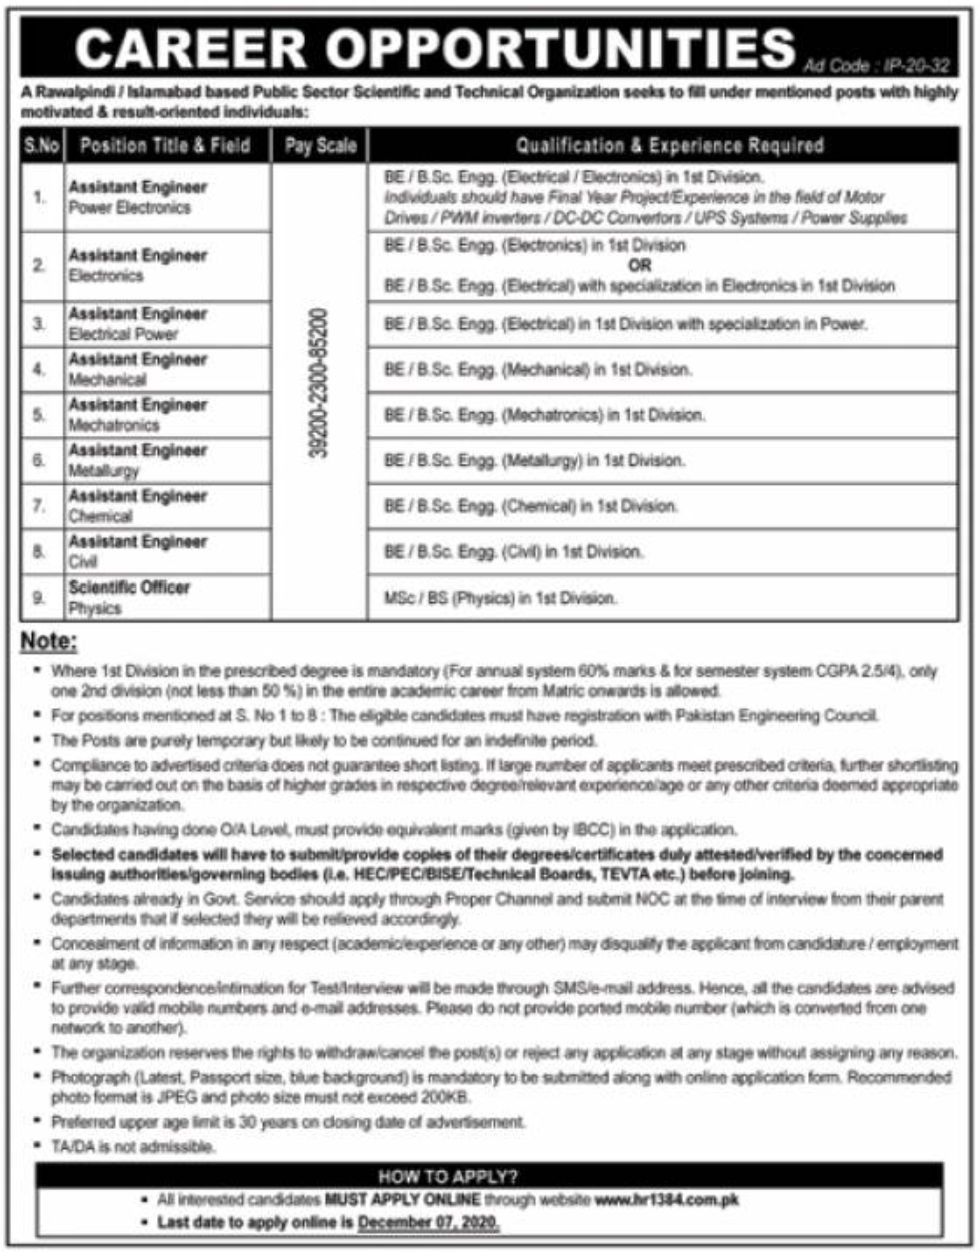 Islamabad Public Sector Scientific and Technical Organization Jobs November 2020